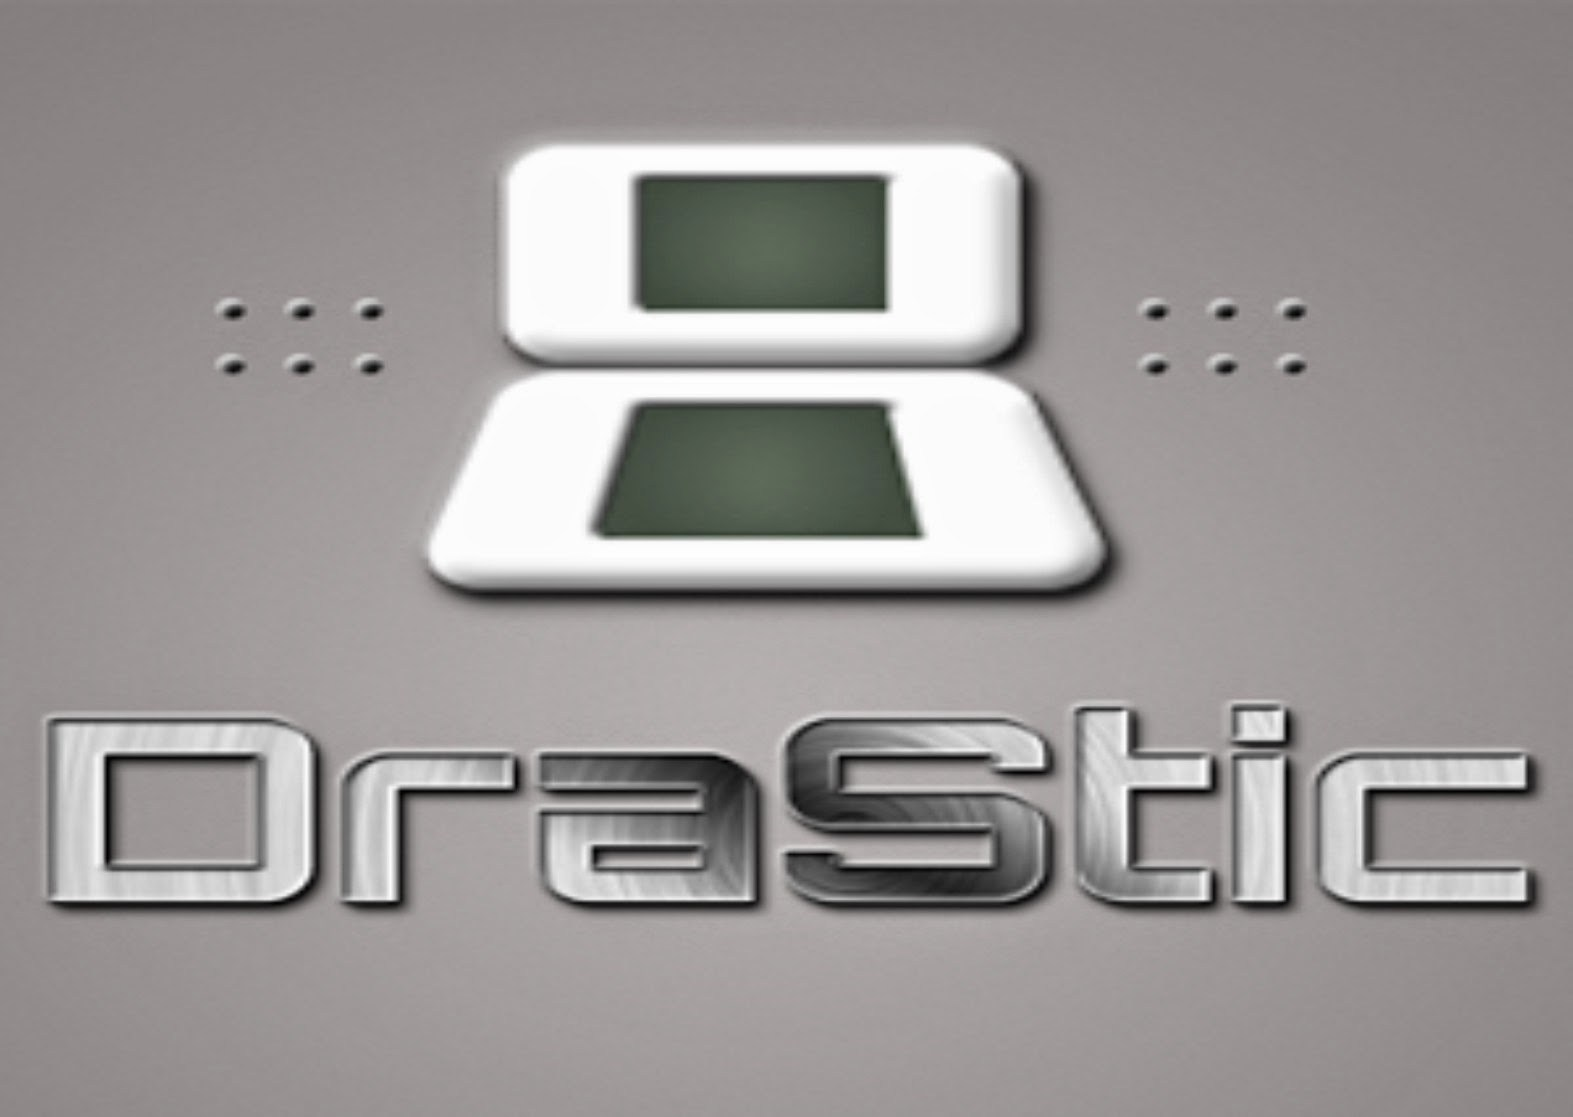 Latest Version Of DraStic DS Emulator R2.5.0.4a Latest